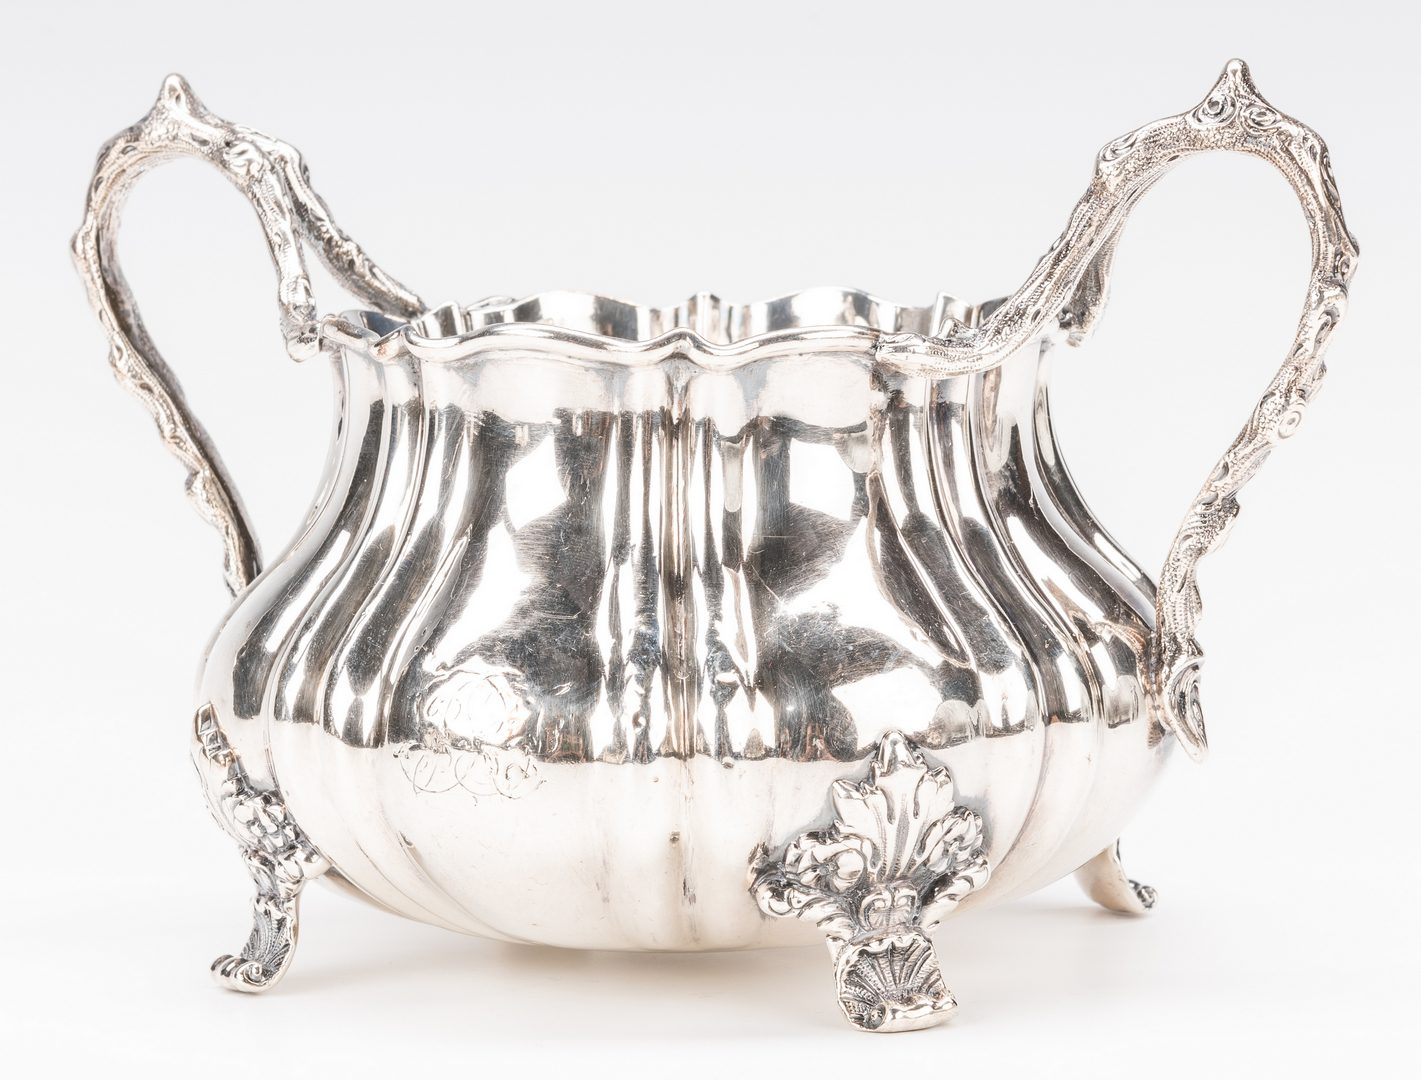 Lot 707: 2 Charles Gordon, London Sterling Silver Tea Service Items